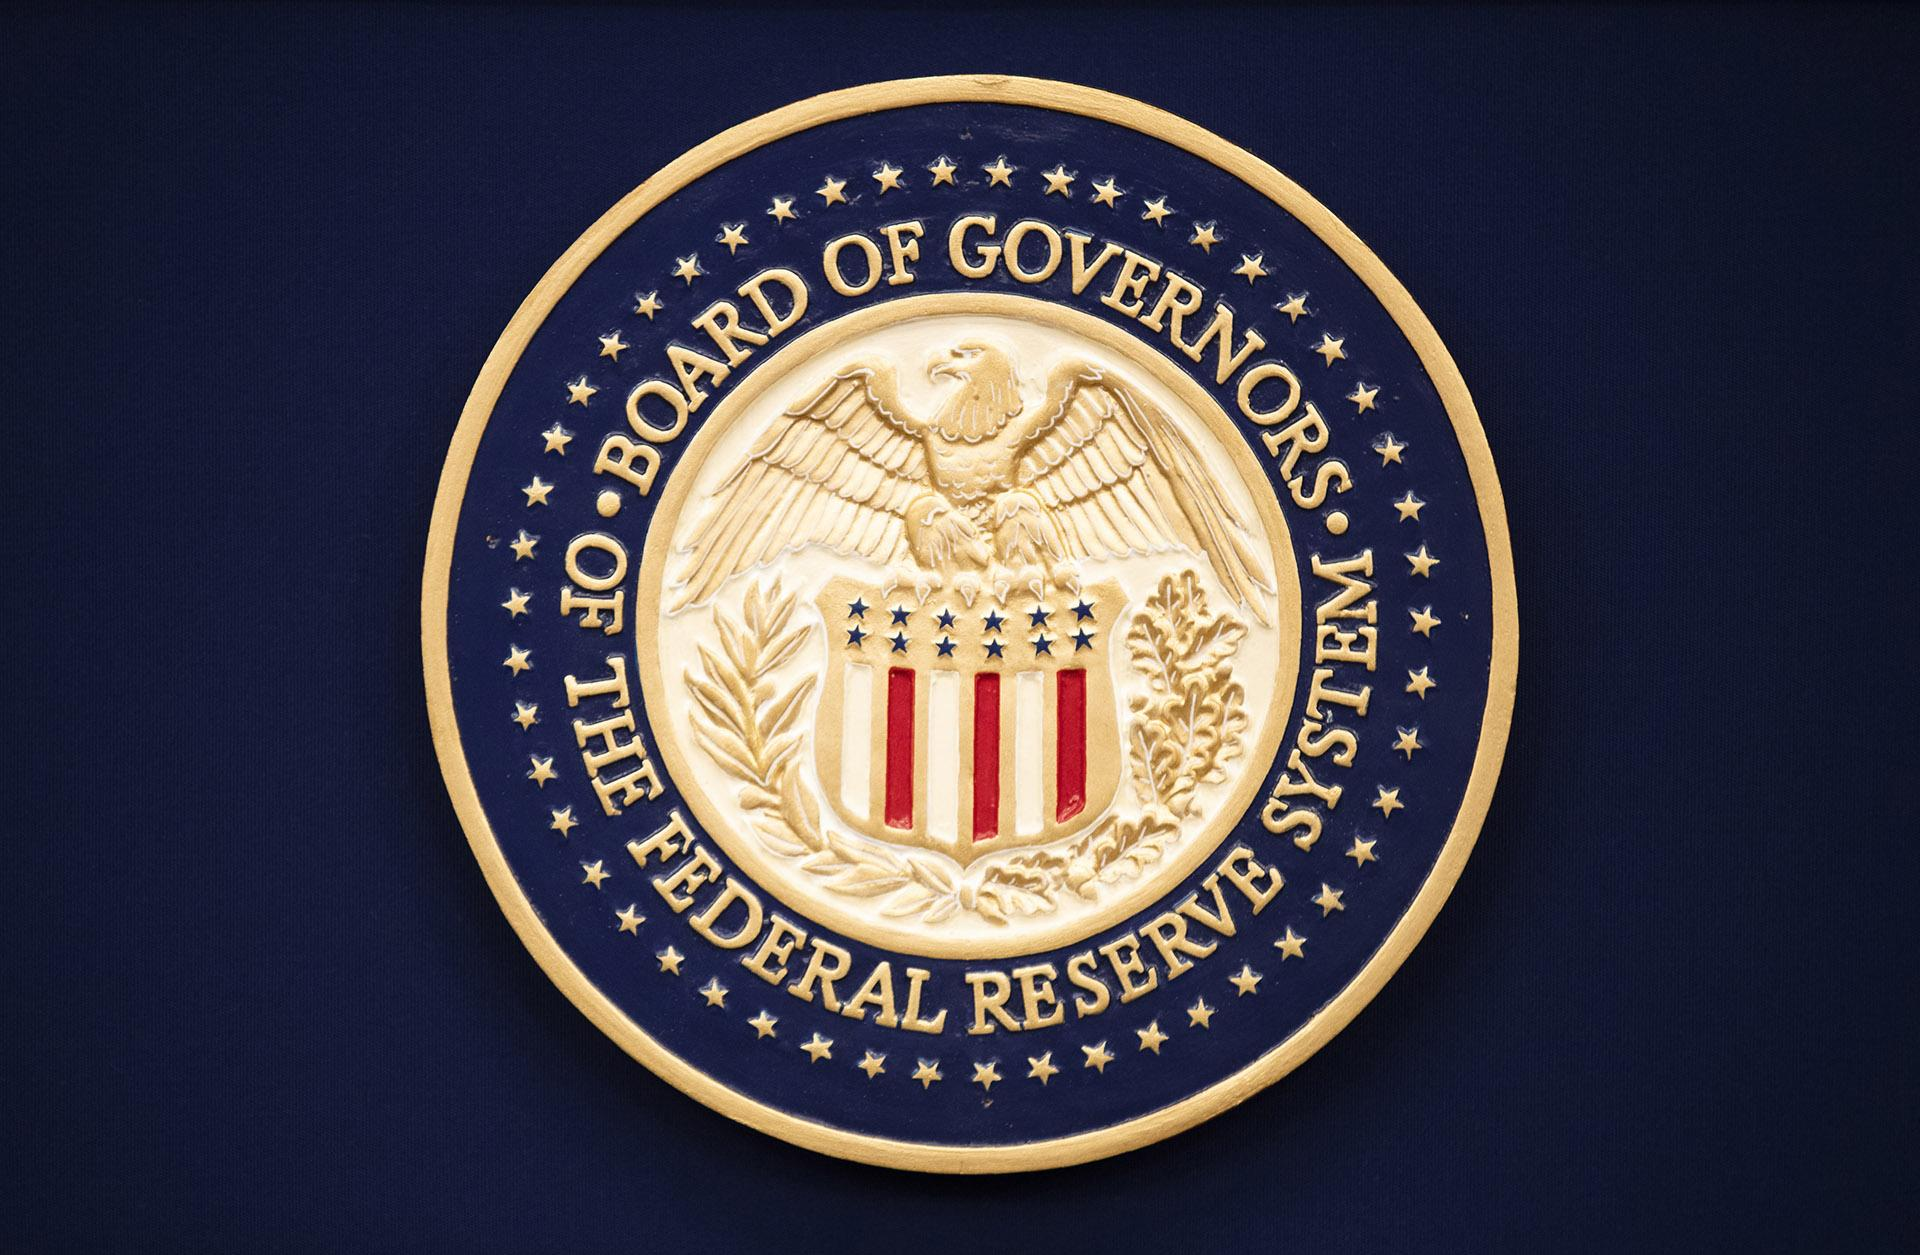 In this July 31, 2019 file photo, The Federal Reserve logo is shown before the start of a scheduled news conference by Chairman Jerome Powell in Washington.  (AP Photo / Manuel Balce Ceneta, File)